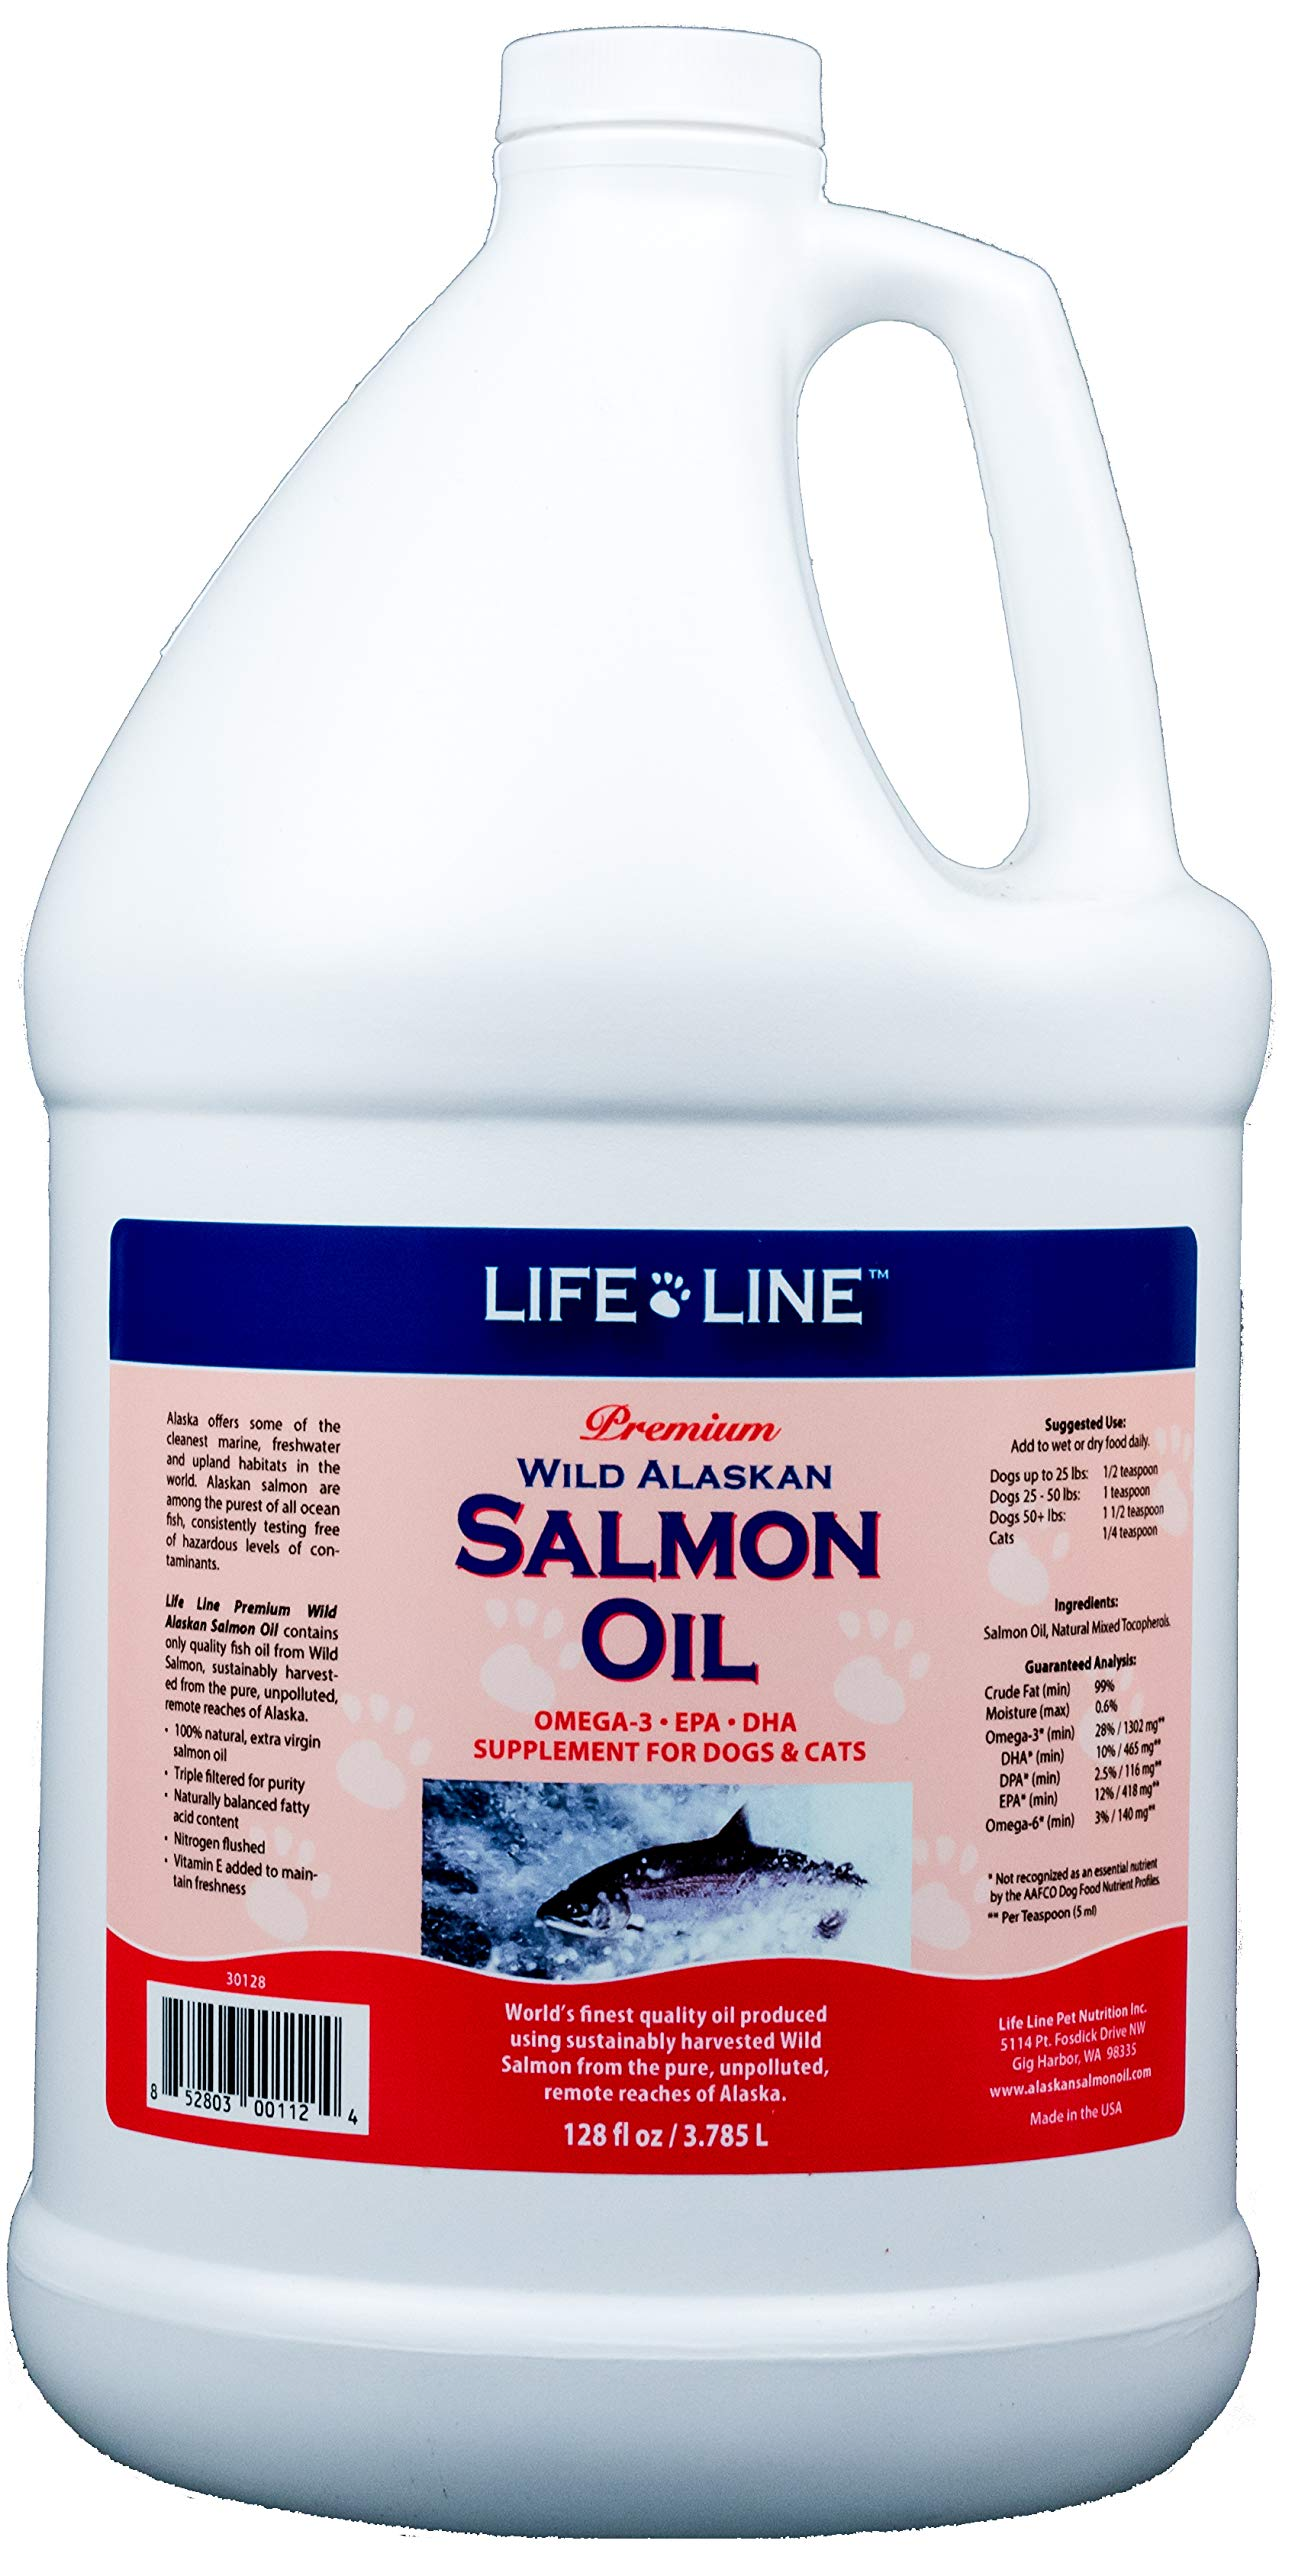 Life Line Pet Nutrition Wild Alaskan Salmon Oil Omega-3 Supplement for Skin & Coat - Supports Brain, Eye & Heart Health in Dogs & Cats by Life Line Pet Nutrition